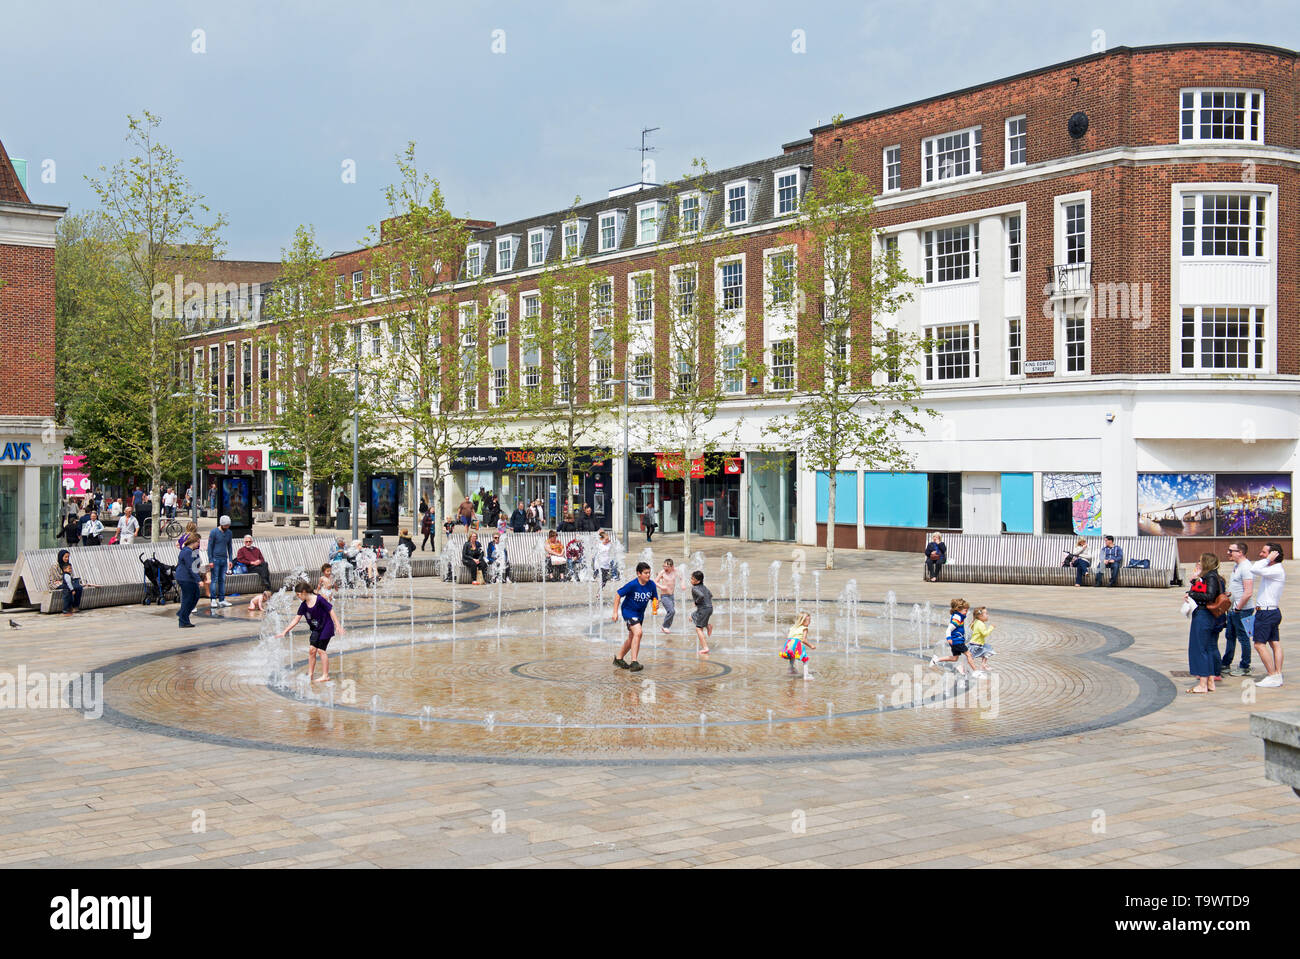 Water Fountain in the centre of Kingston upon Hull, East Yorkshire, England UK - Stock Image